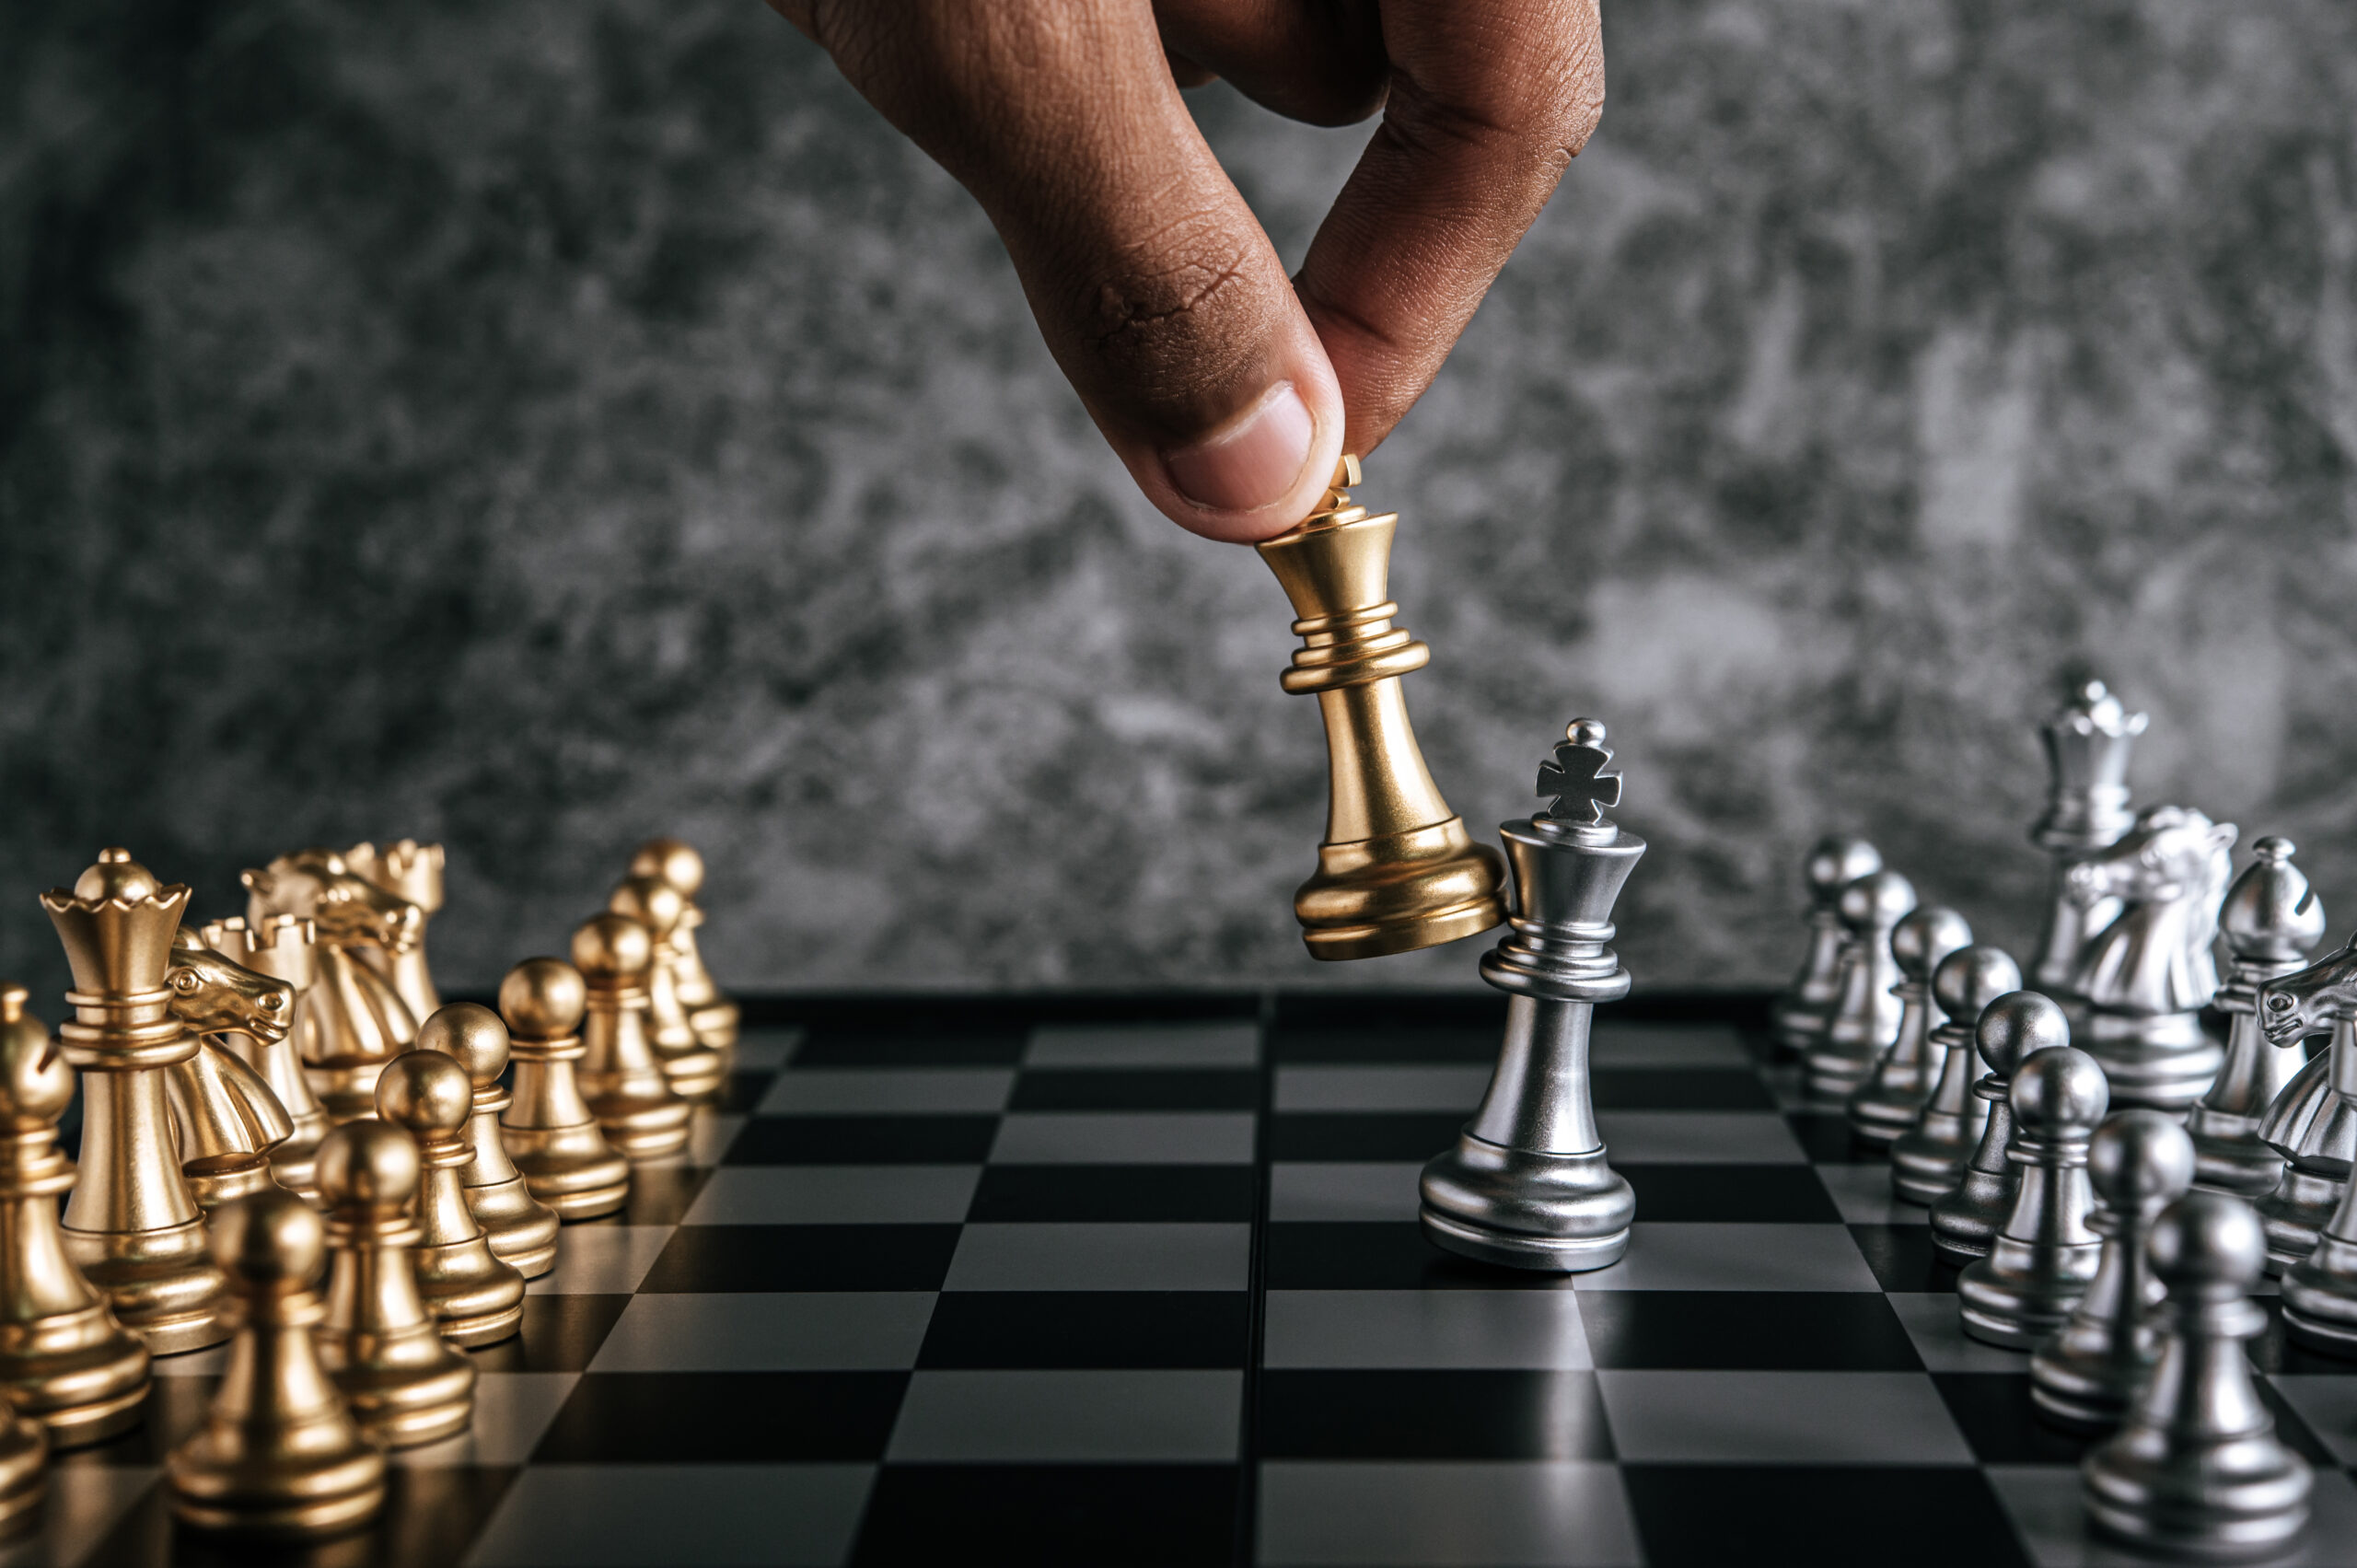 Hand of man playing chess for business planning and comparison of metaphor, selective focus